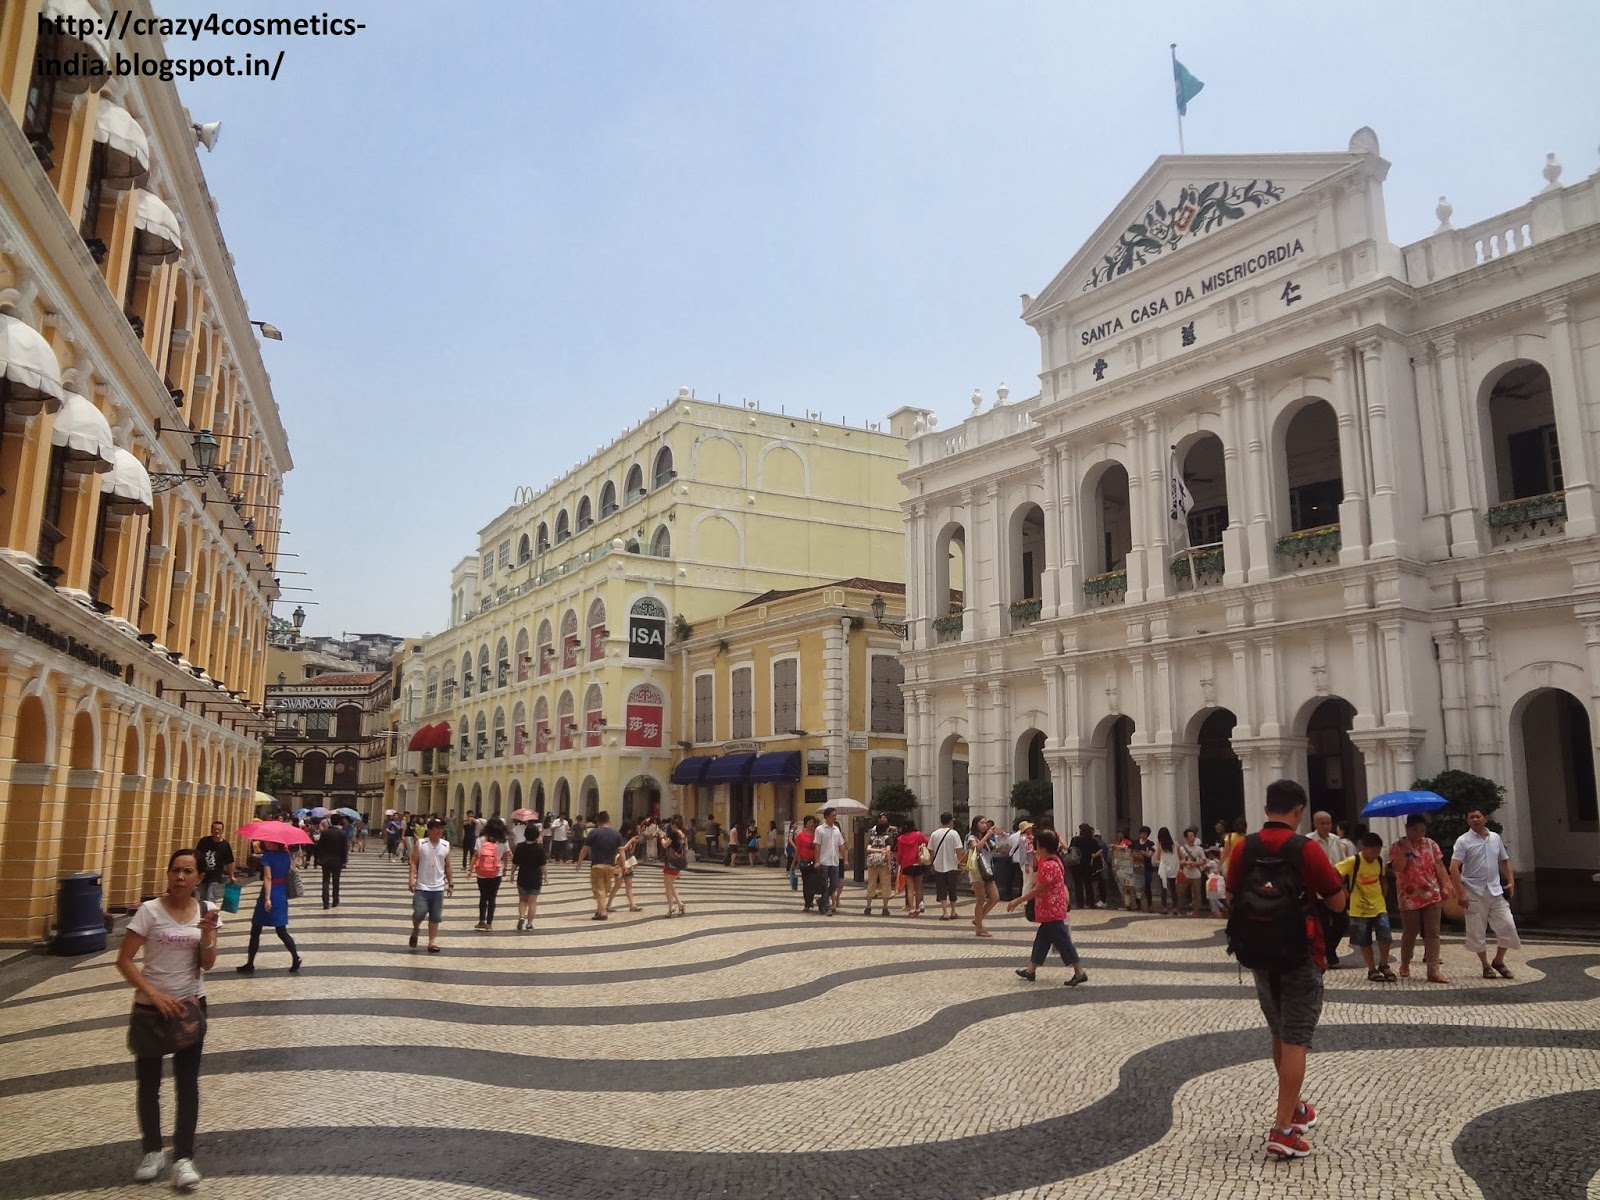 Senado square shopping